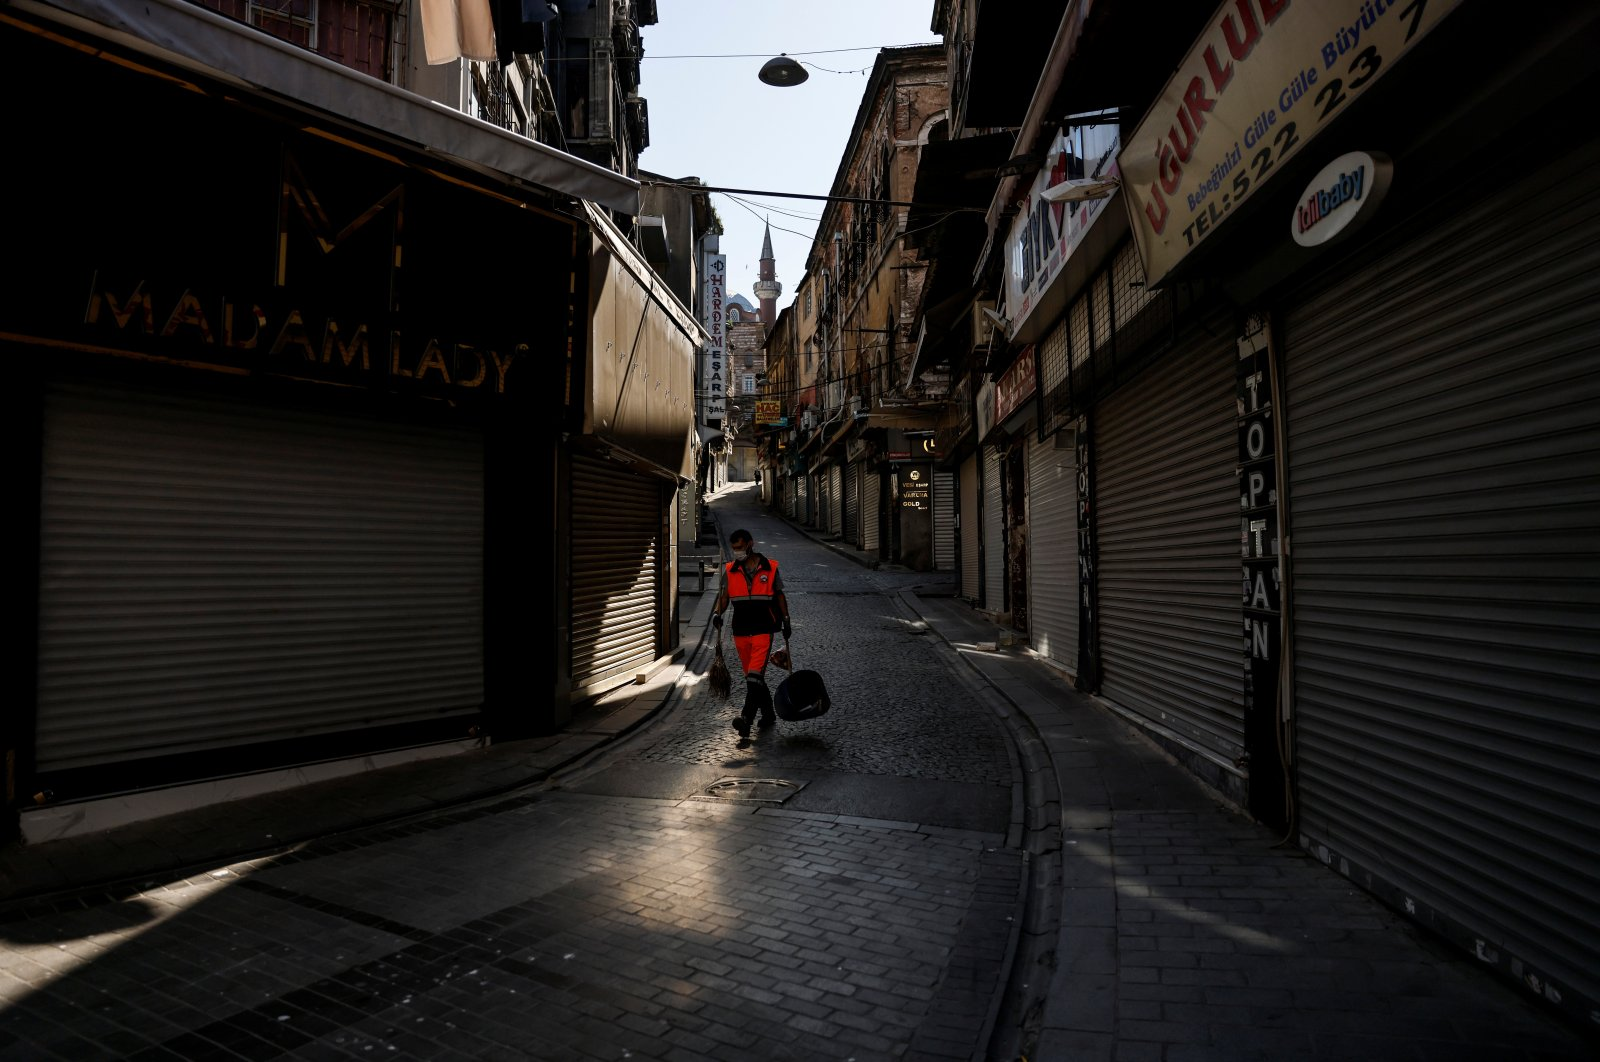 A municipality worker sweeps a street in otherwise busy Eminönü quarter, during lockdown, in Istanbul, Turkey, May 5, 2021. (REUTERS PHOTO)